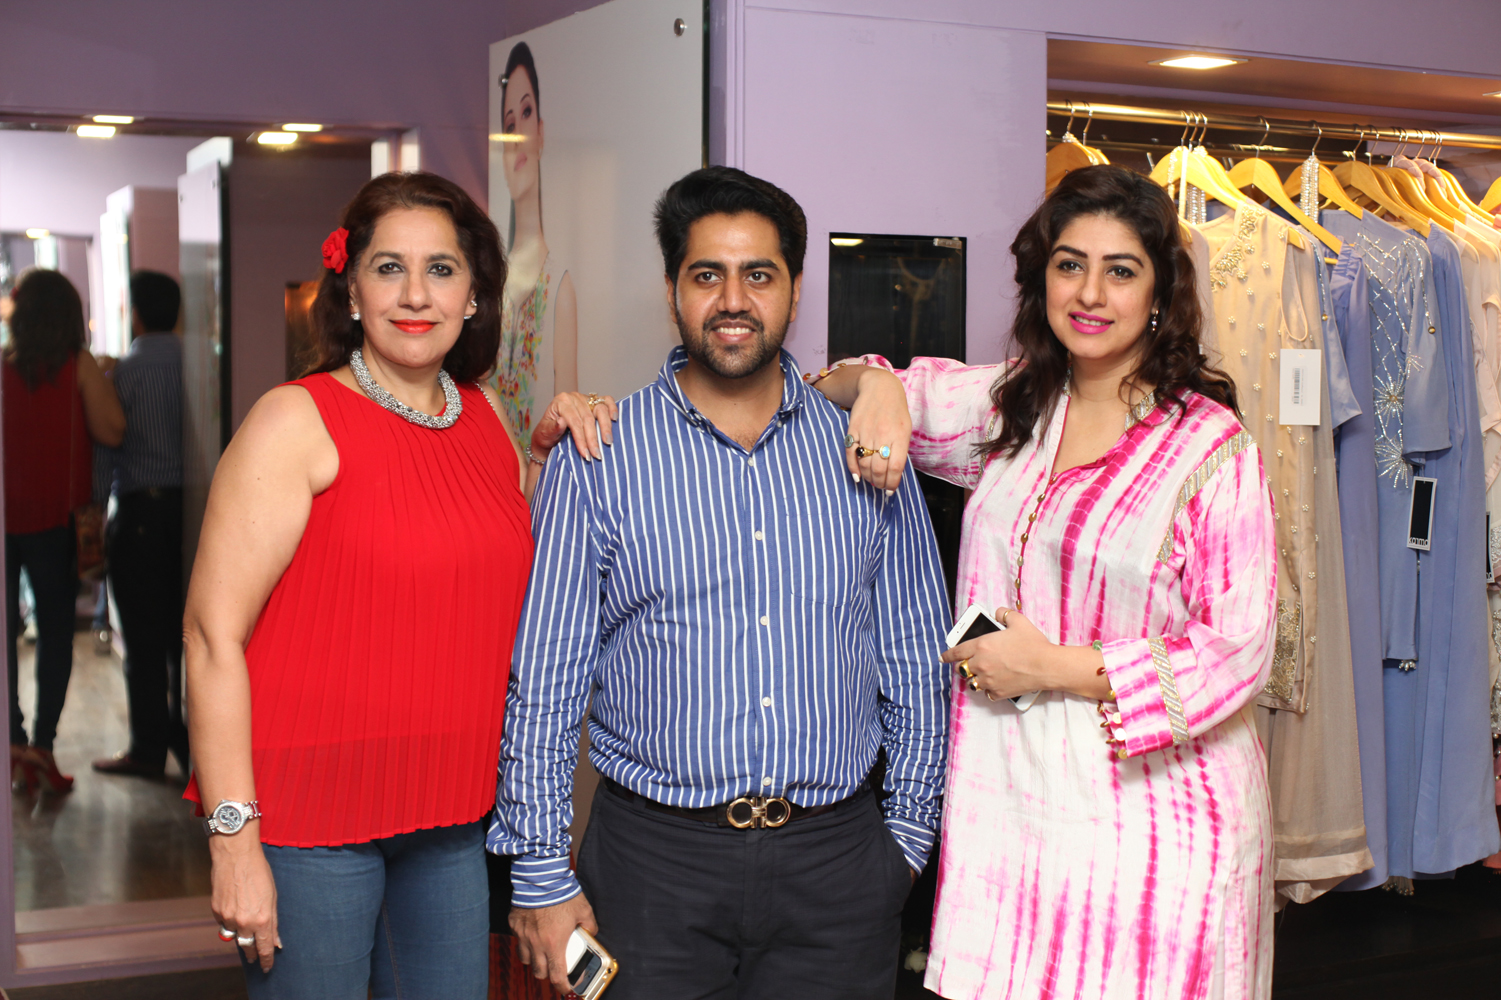 Uzma, Ahmad and Amna Kardar